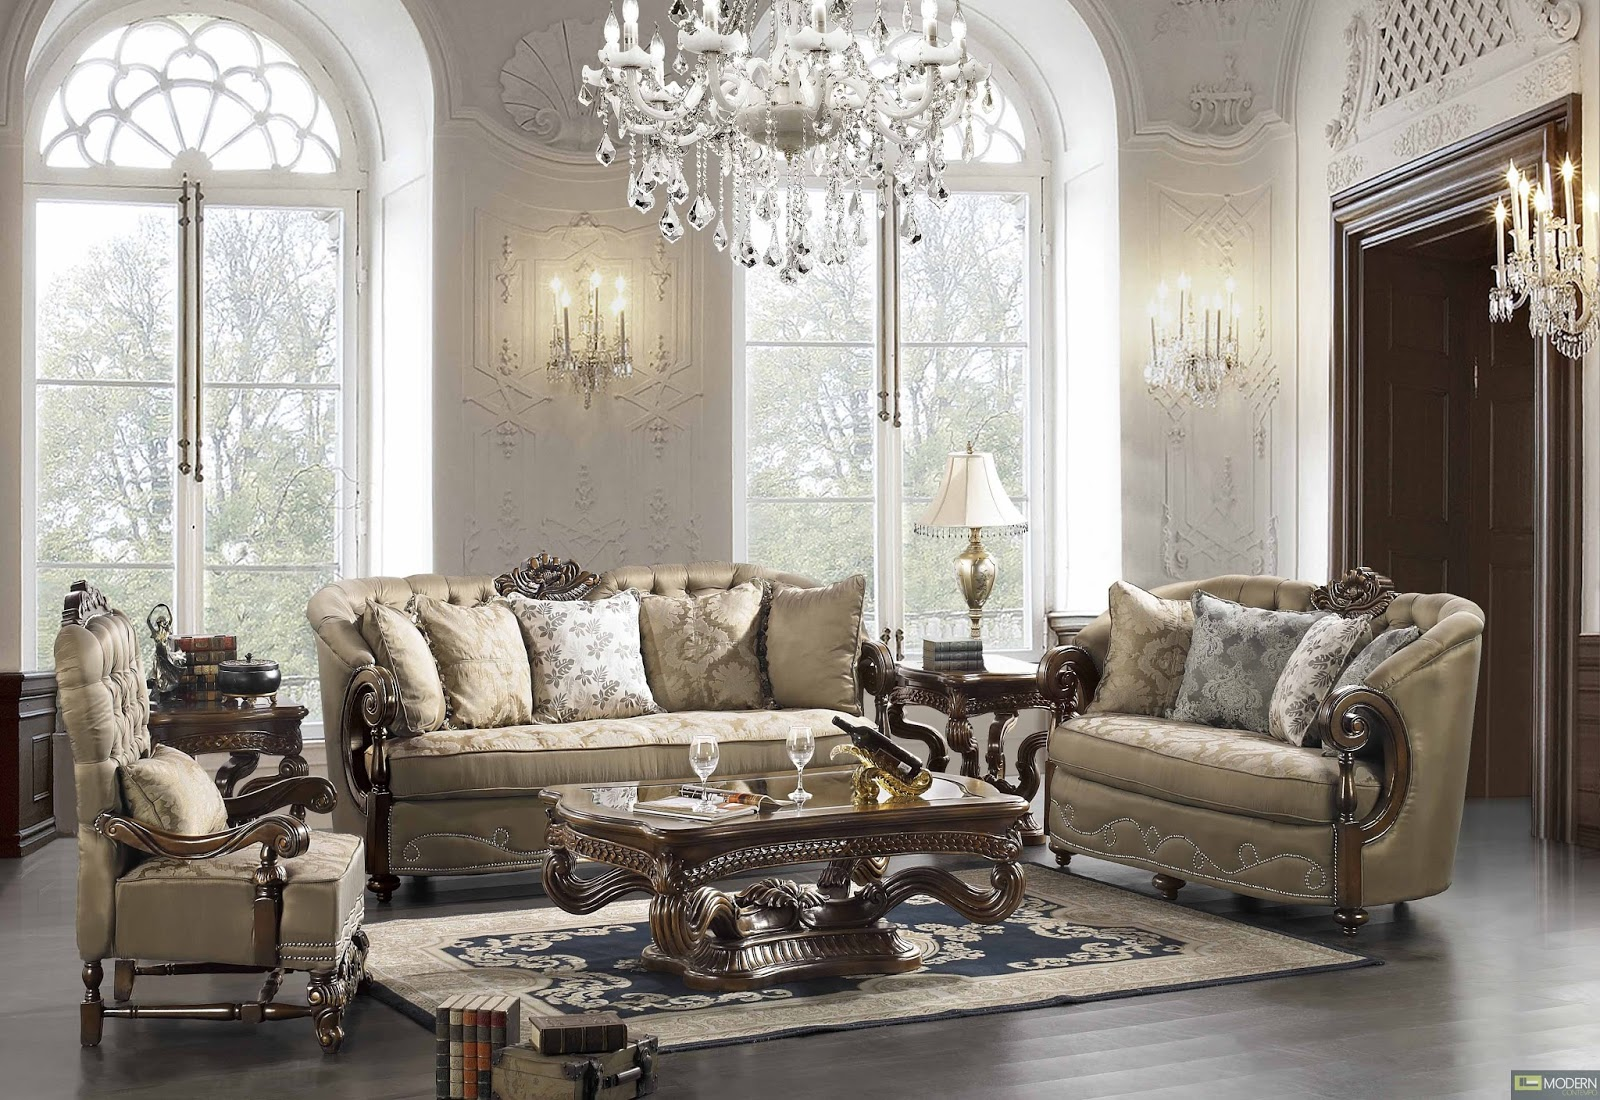 Best furniture ideas for home traditional classic for Elegant living room ideas